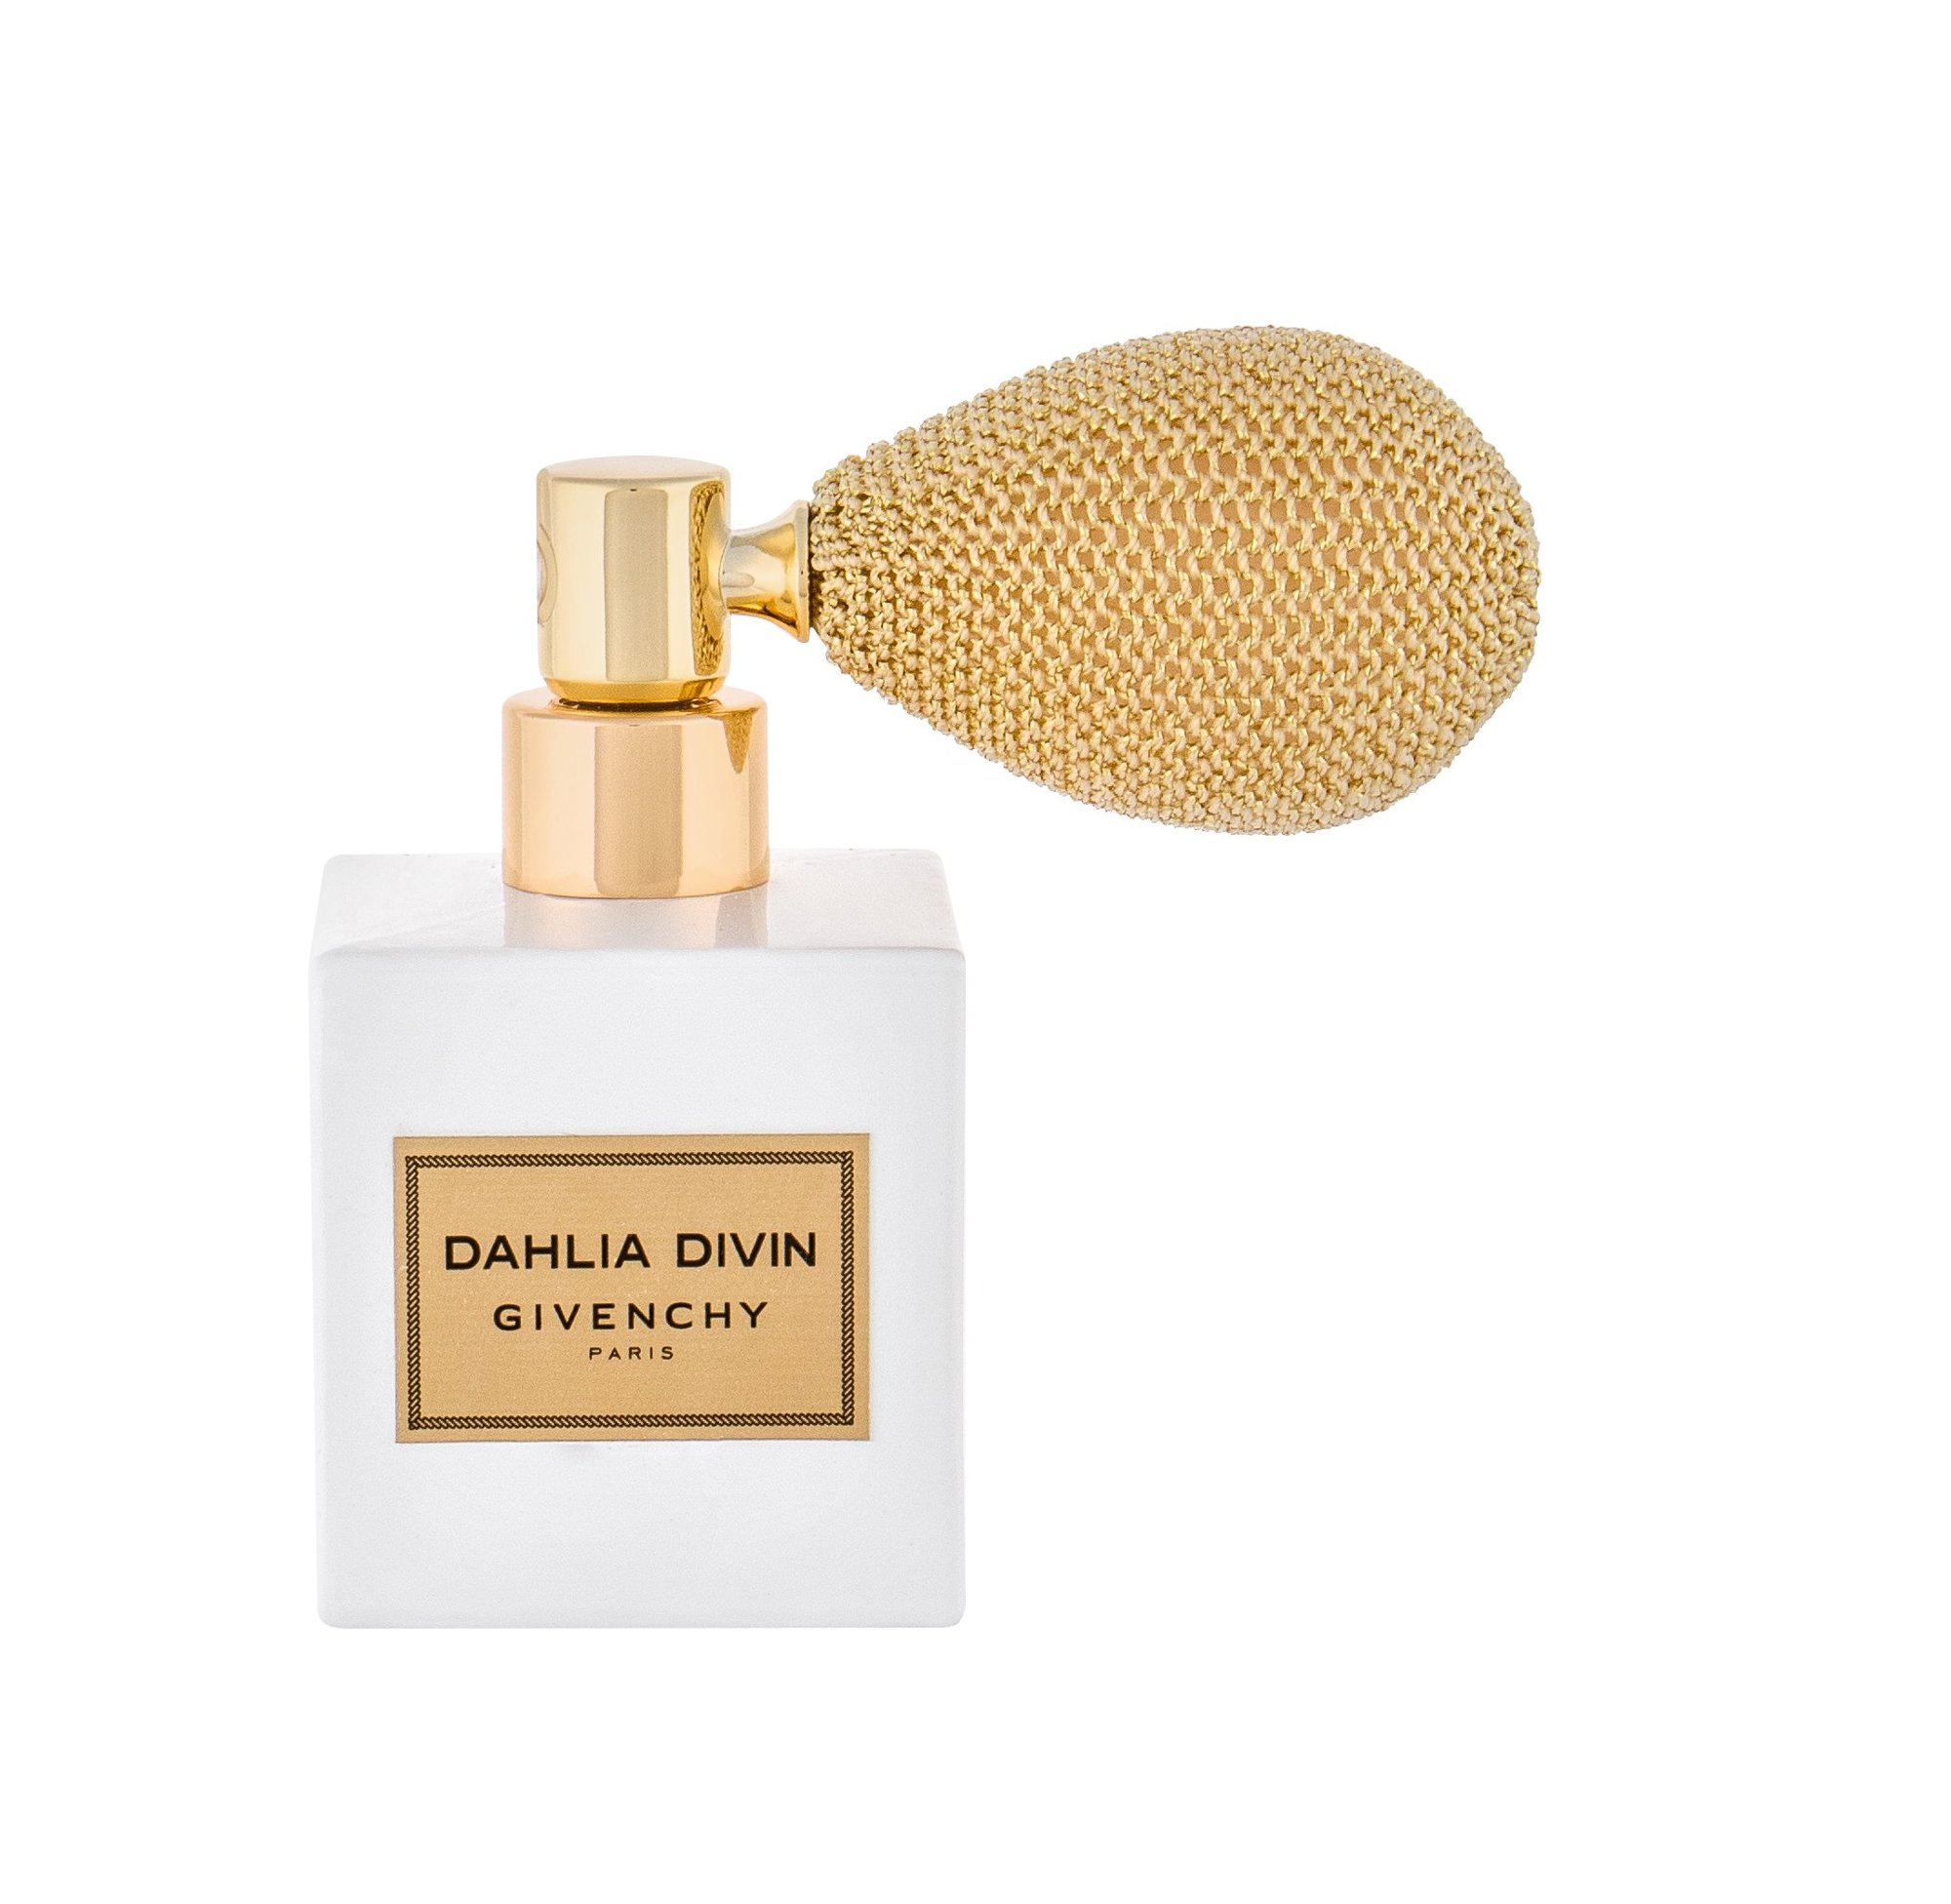 Givenchy Dahlia Divin Body Powder 9ml